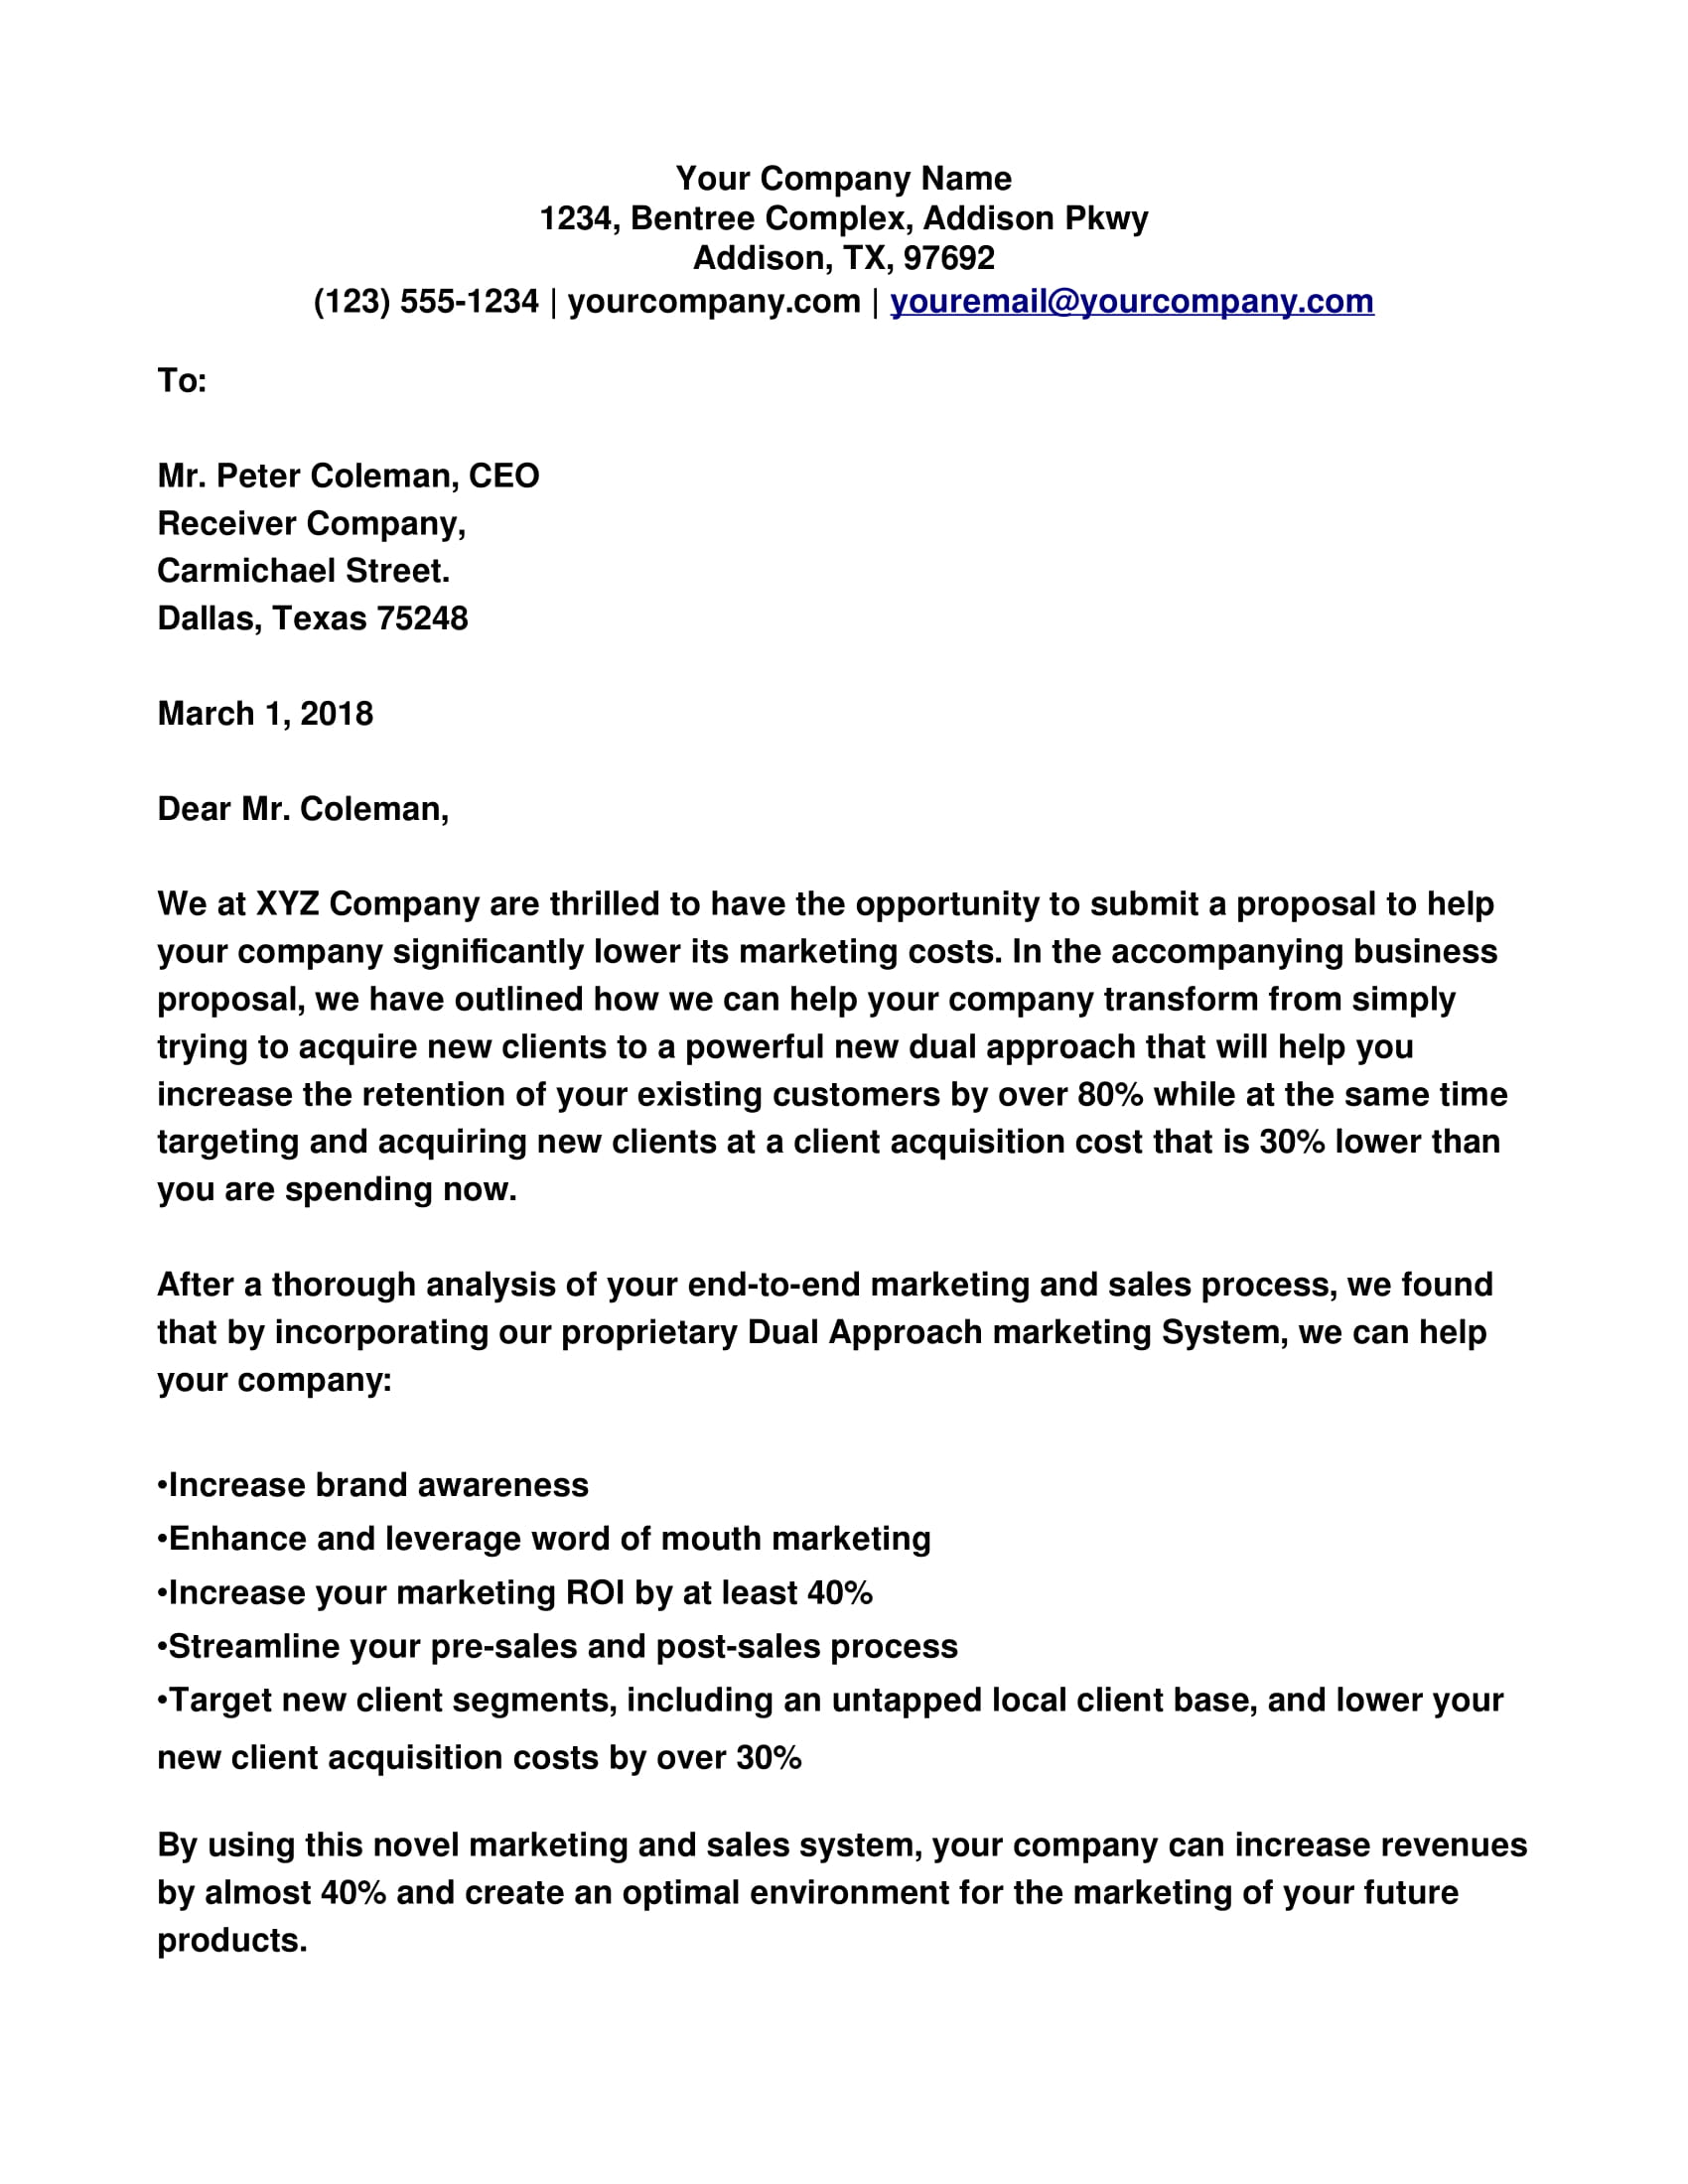 business proposal cover letter examples